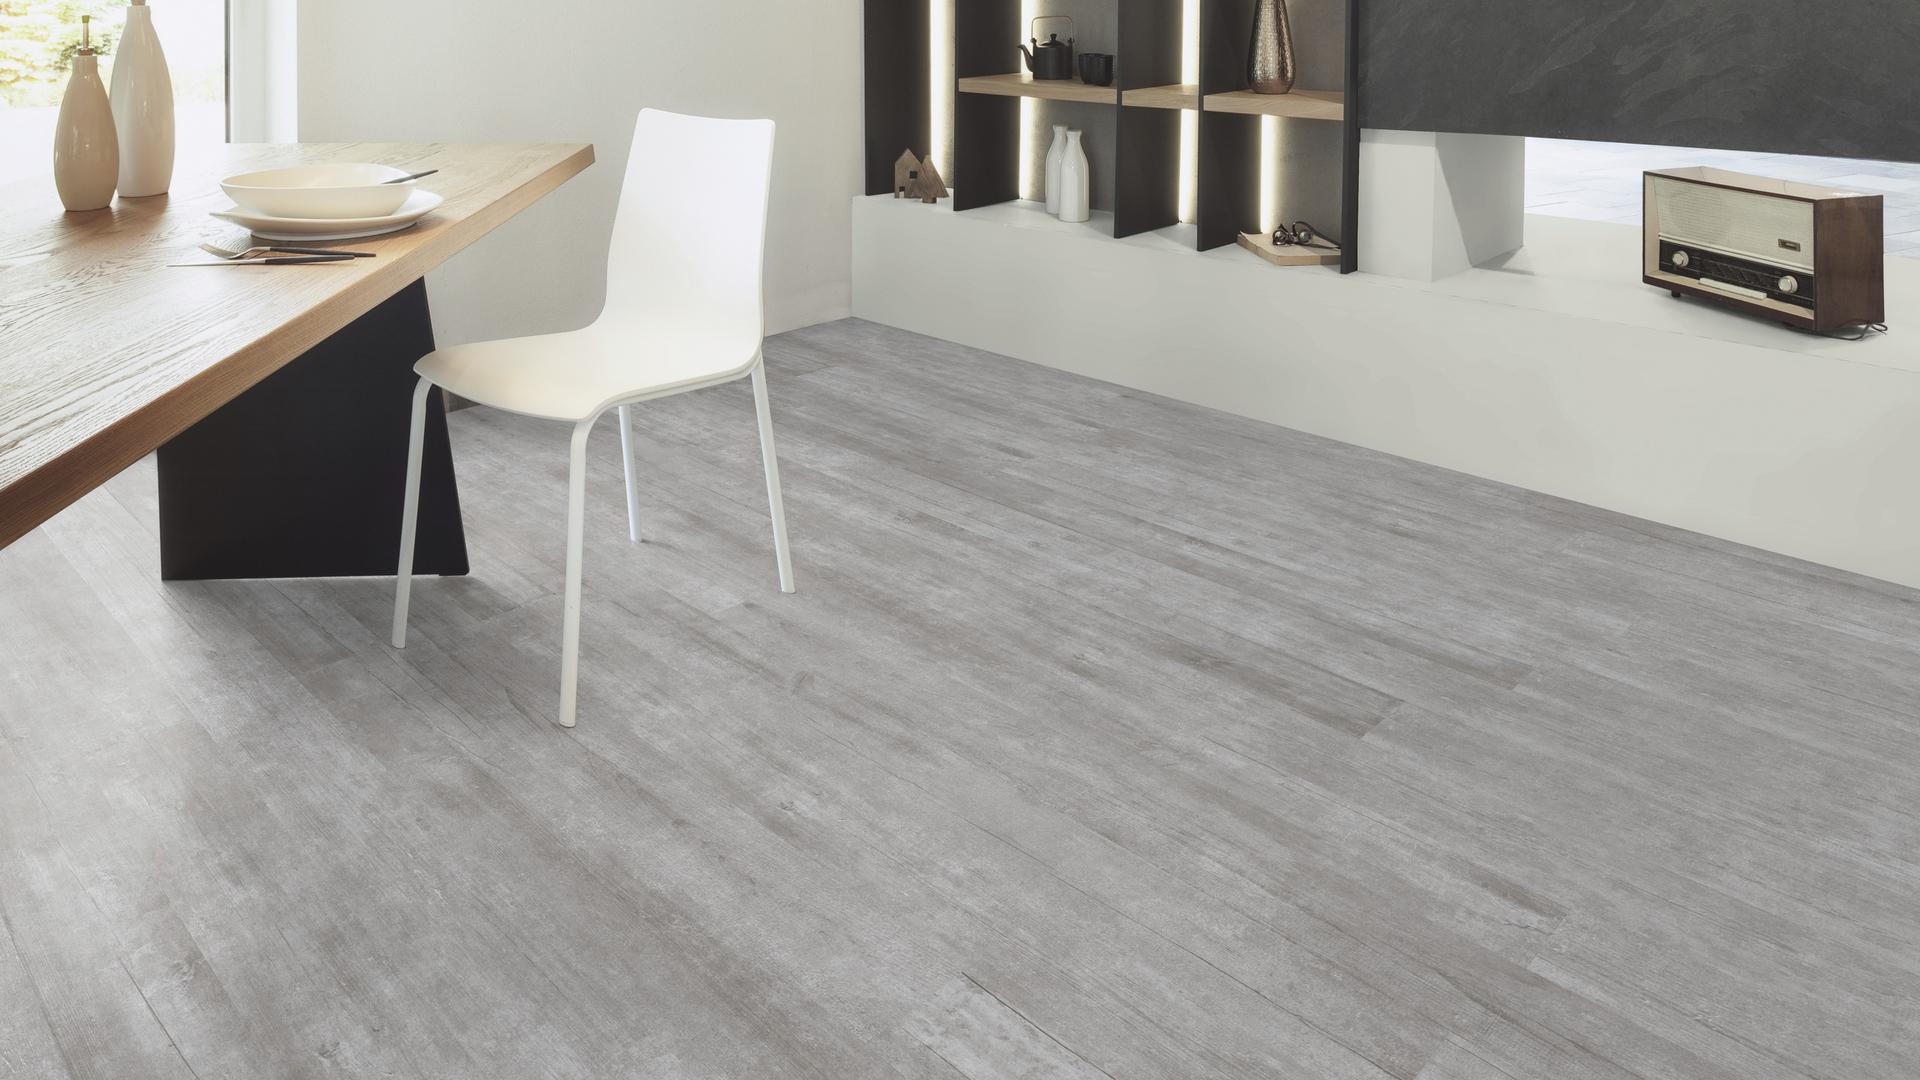 Esszimmer Kiefer O850 Pine Frost Ah Antique Textured Floor Kaindl